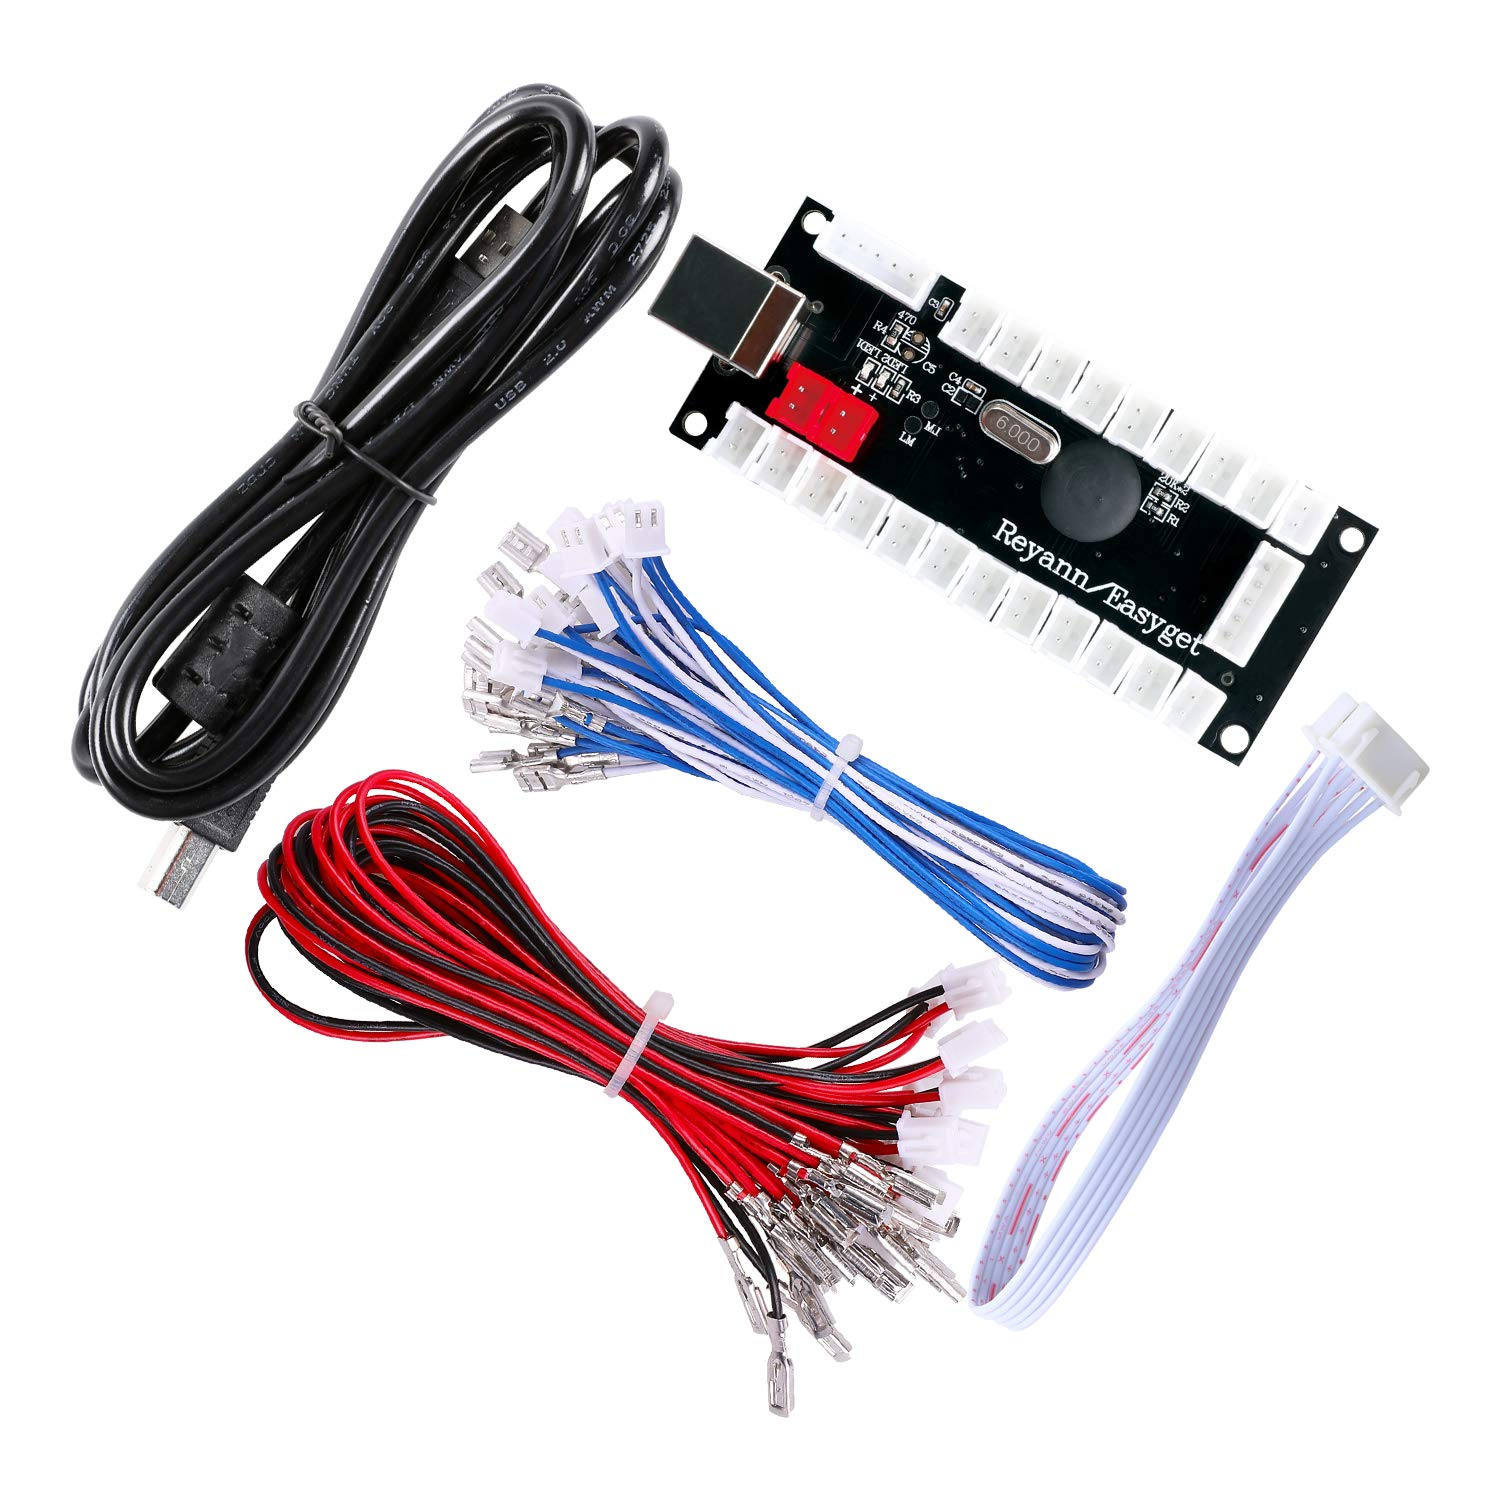 Hikig Zero Delay Arcade USB Encoder and Cables Terminal: 5pin - 4.8mm - 2.8mm Kit to Joystick and Buttons for MAME /& Raspberry Pi Retropie Projects